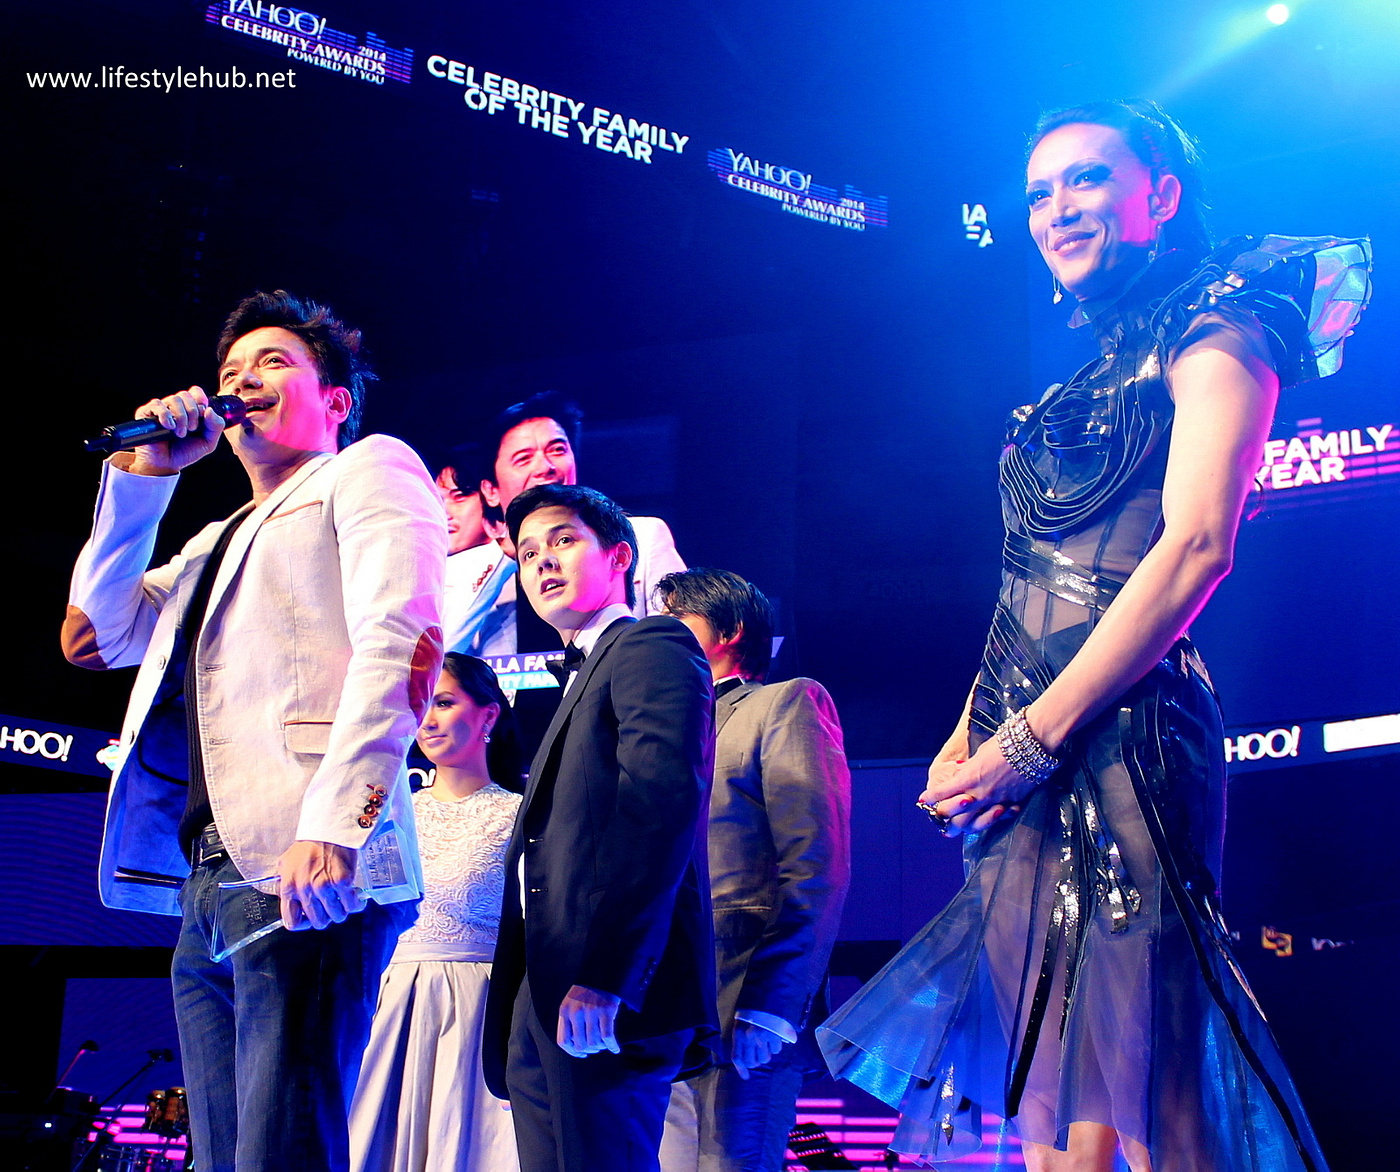 padilla celebrity family of the year